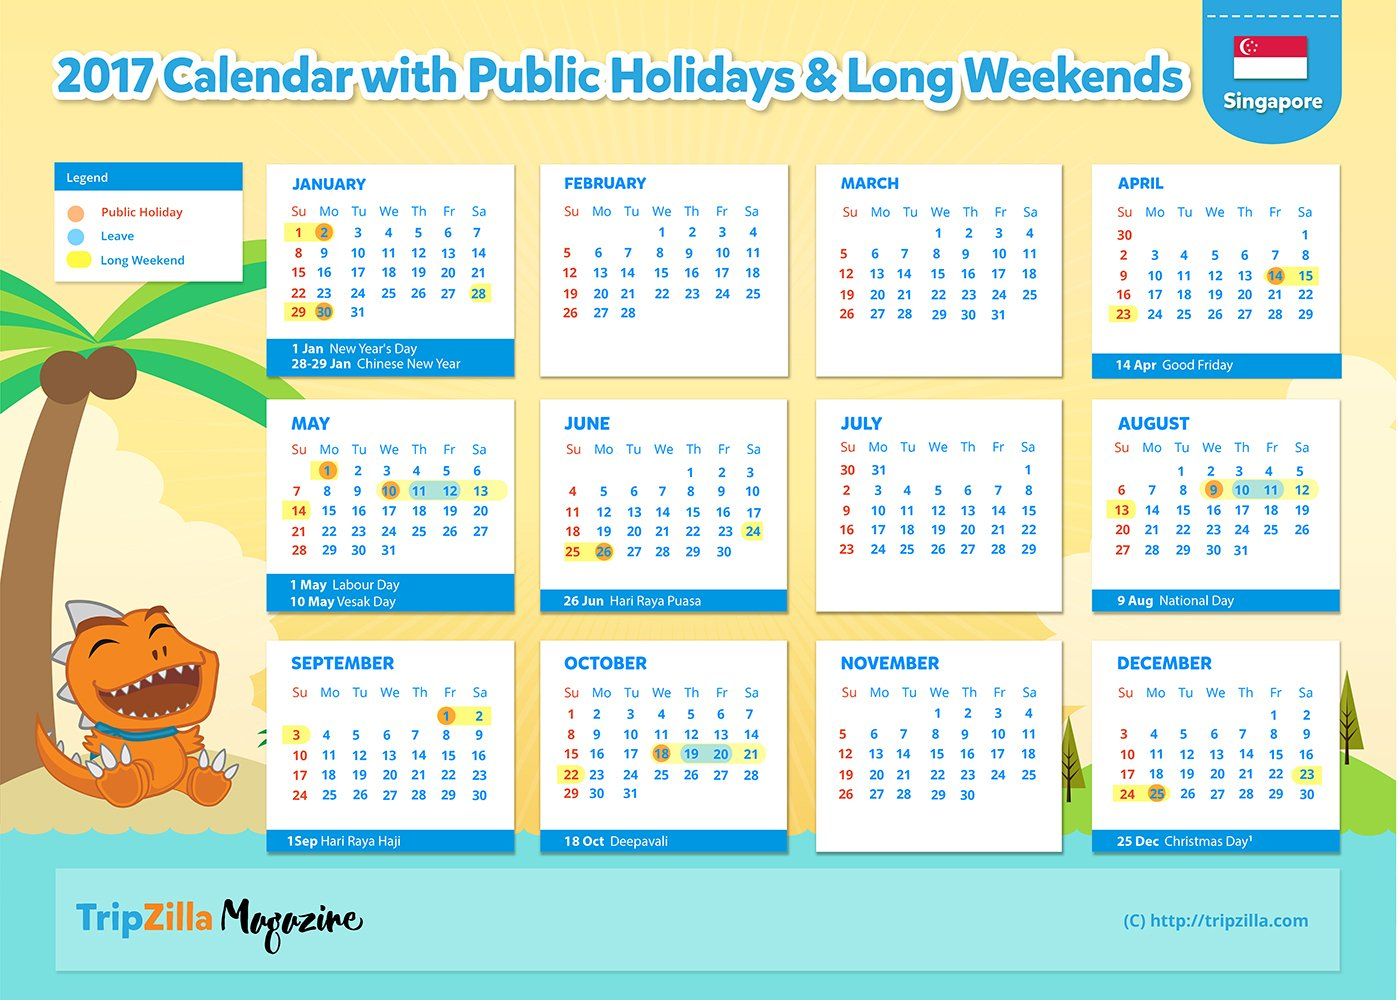 Calendar Planner Singapore Printable : Long weekends in singapore bonus planner